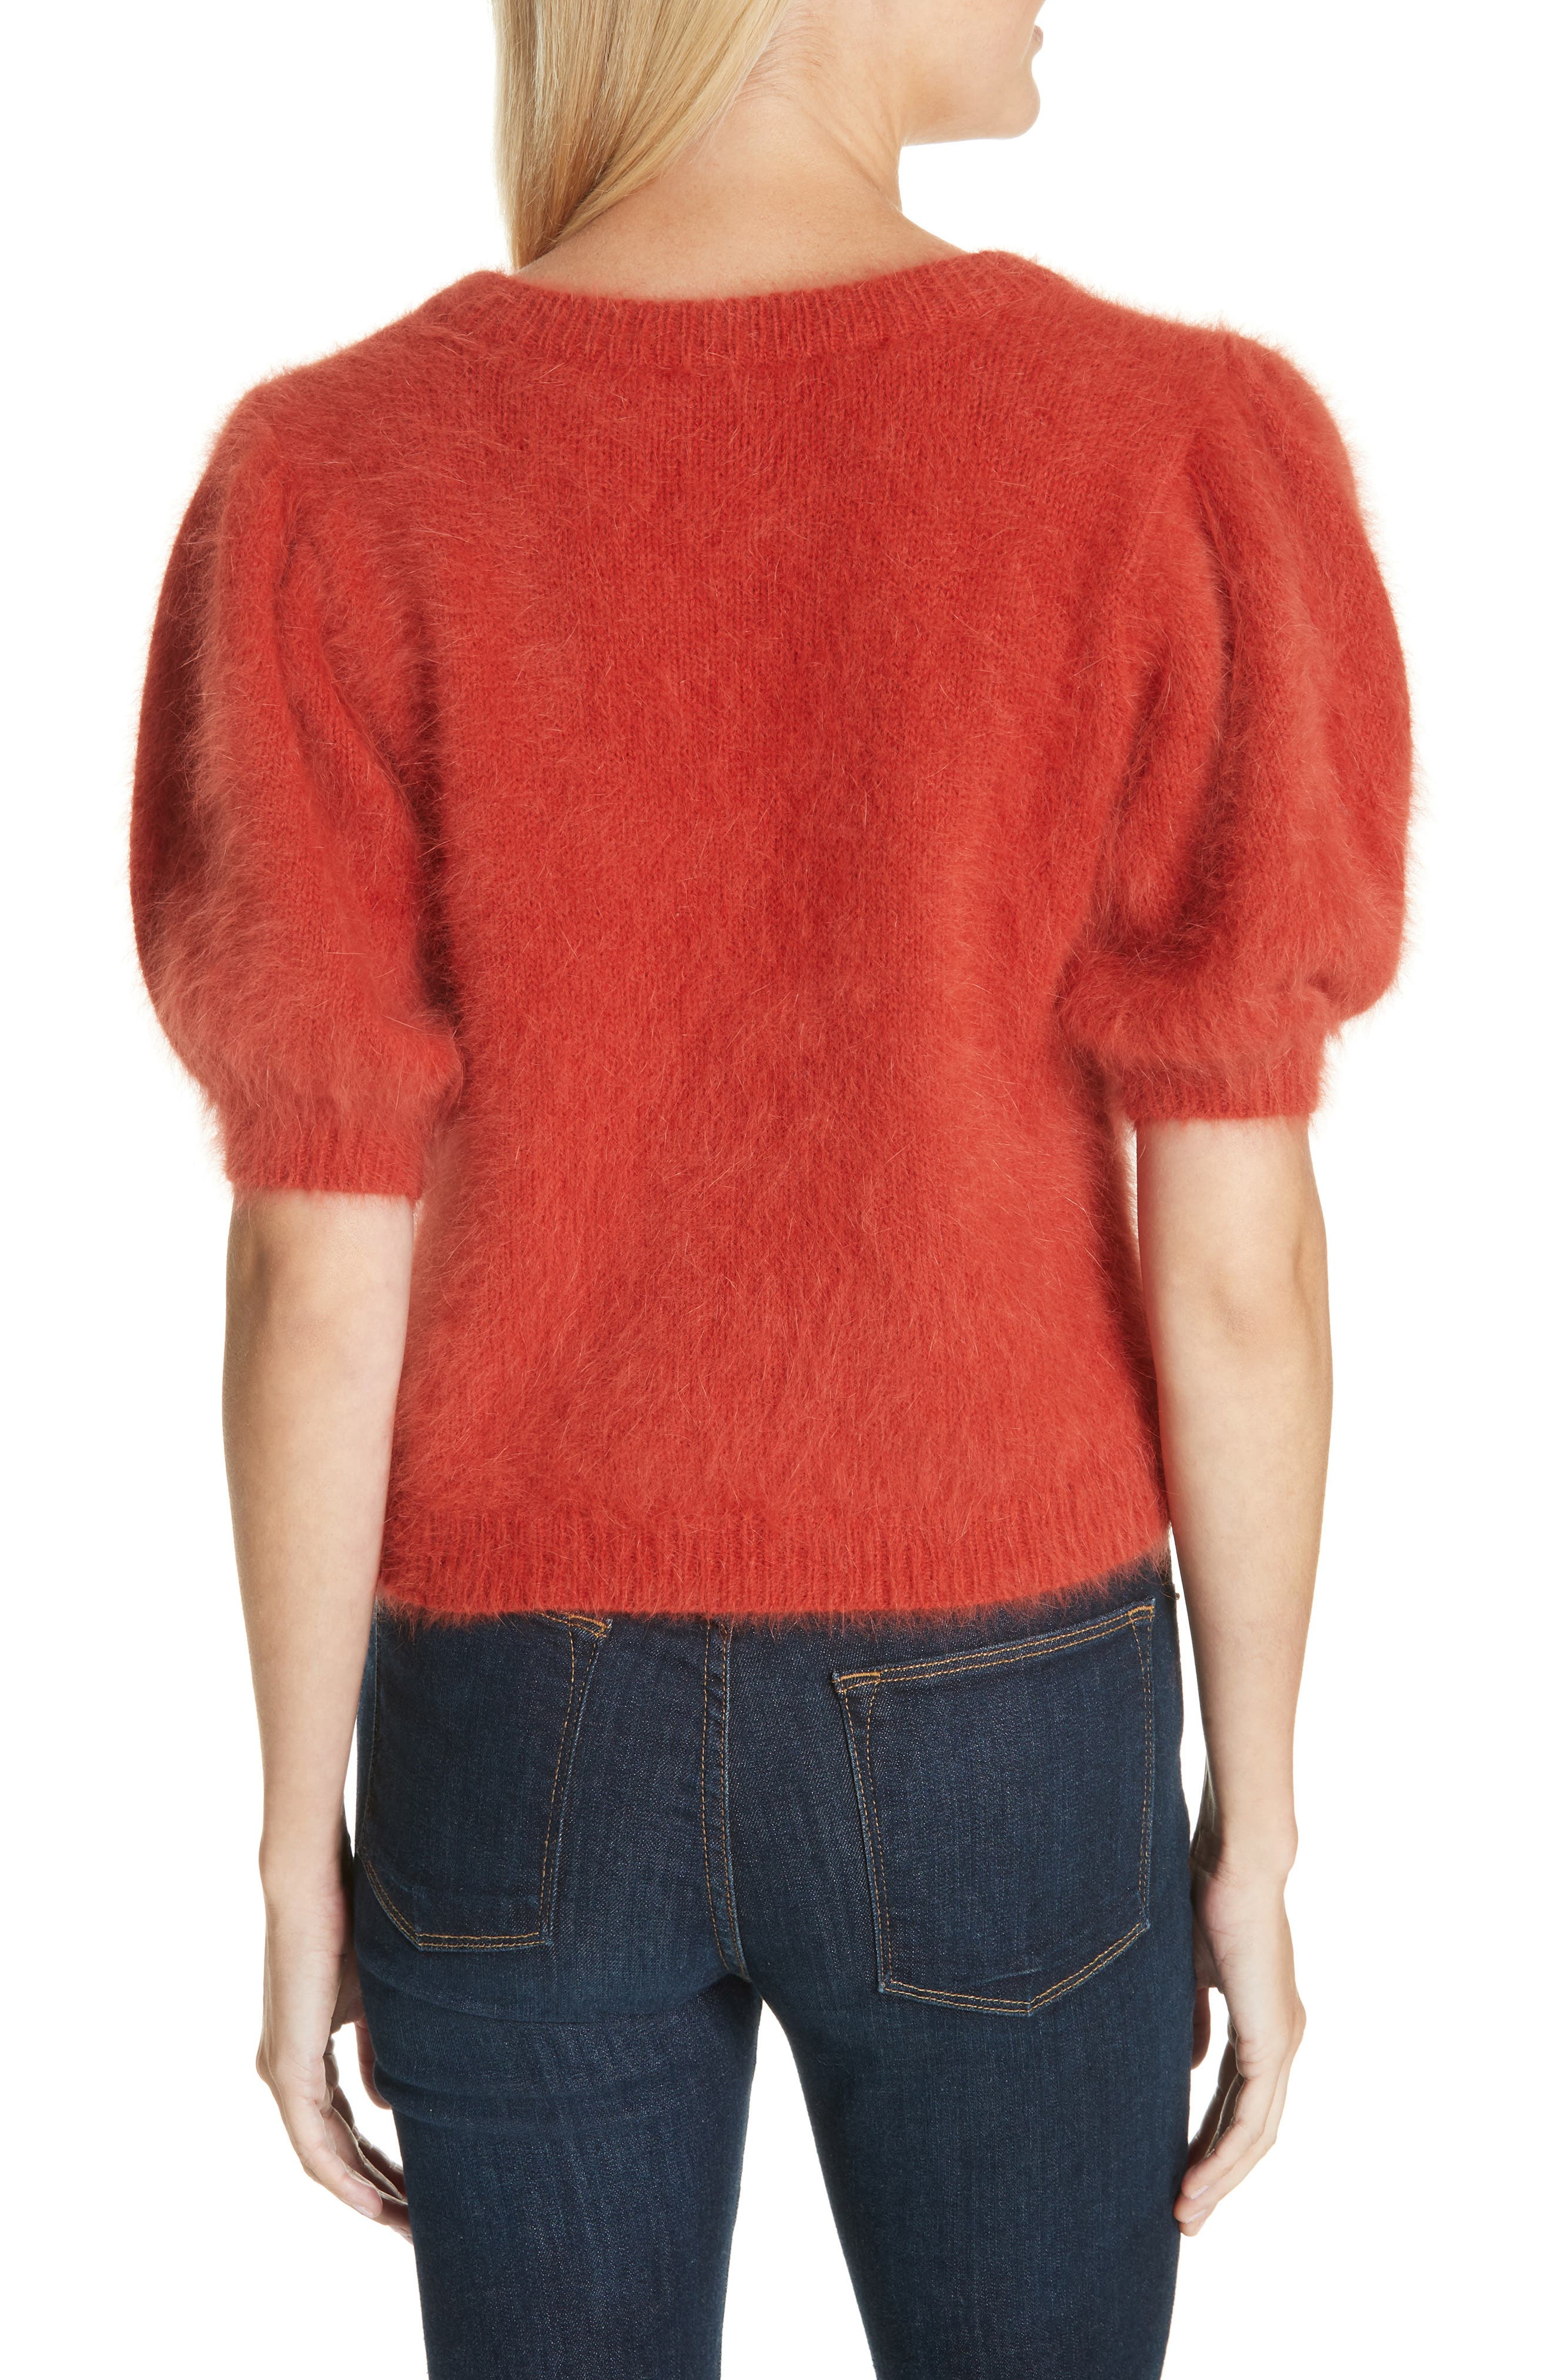 Aries Puff Sleeve Sweater,                             Alternate thumbnail 2, color,                             CRIMSON